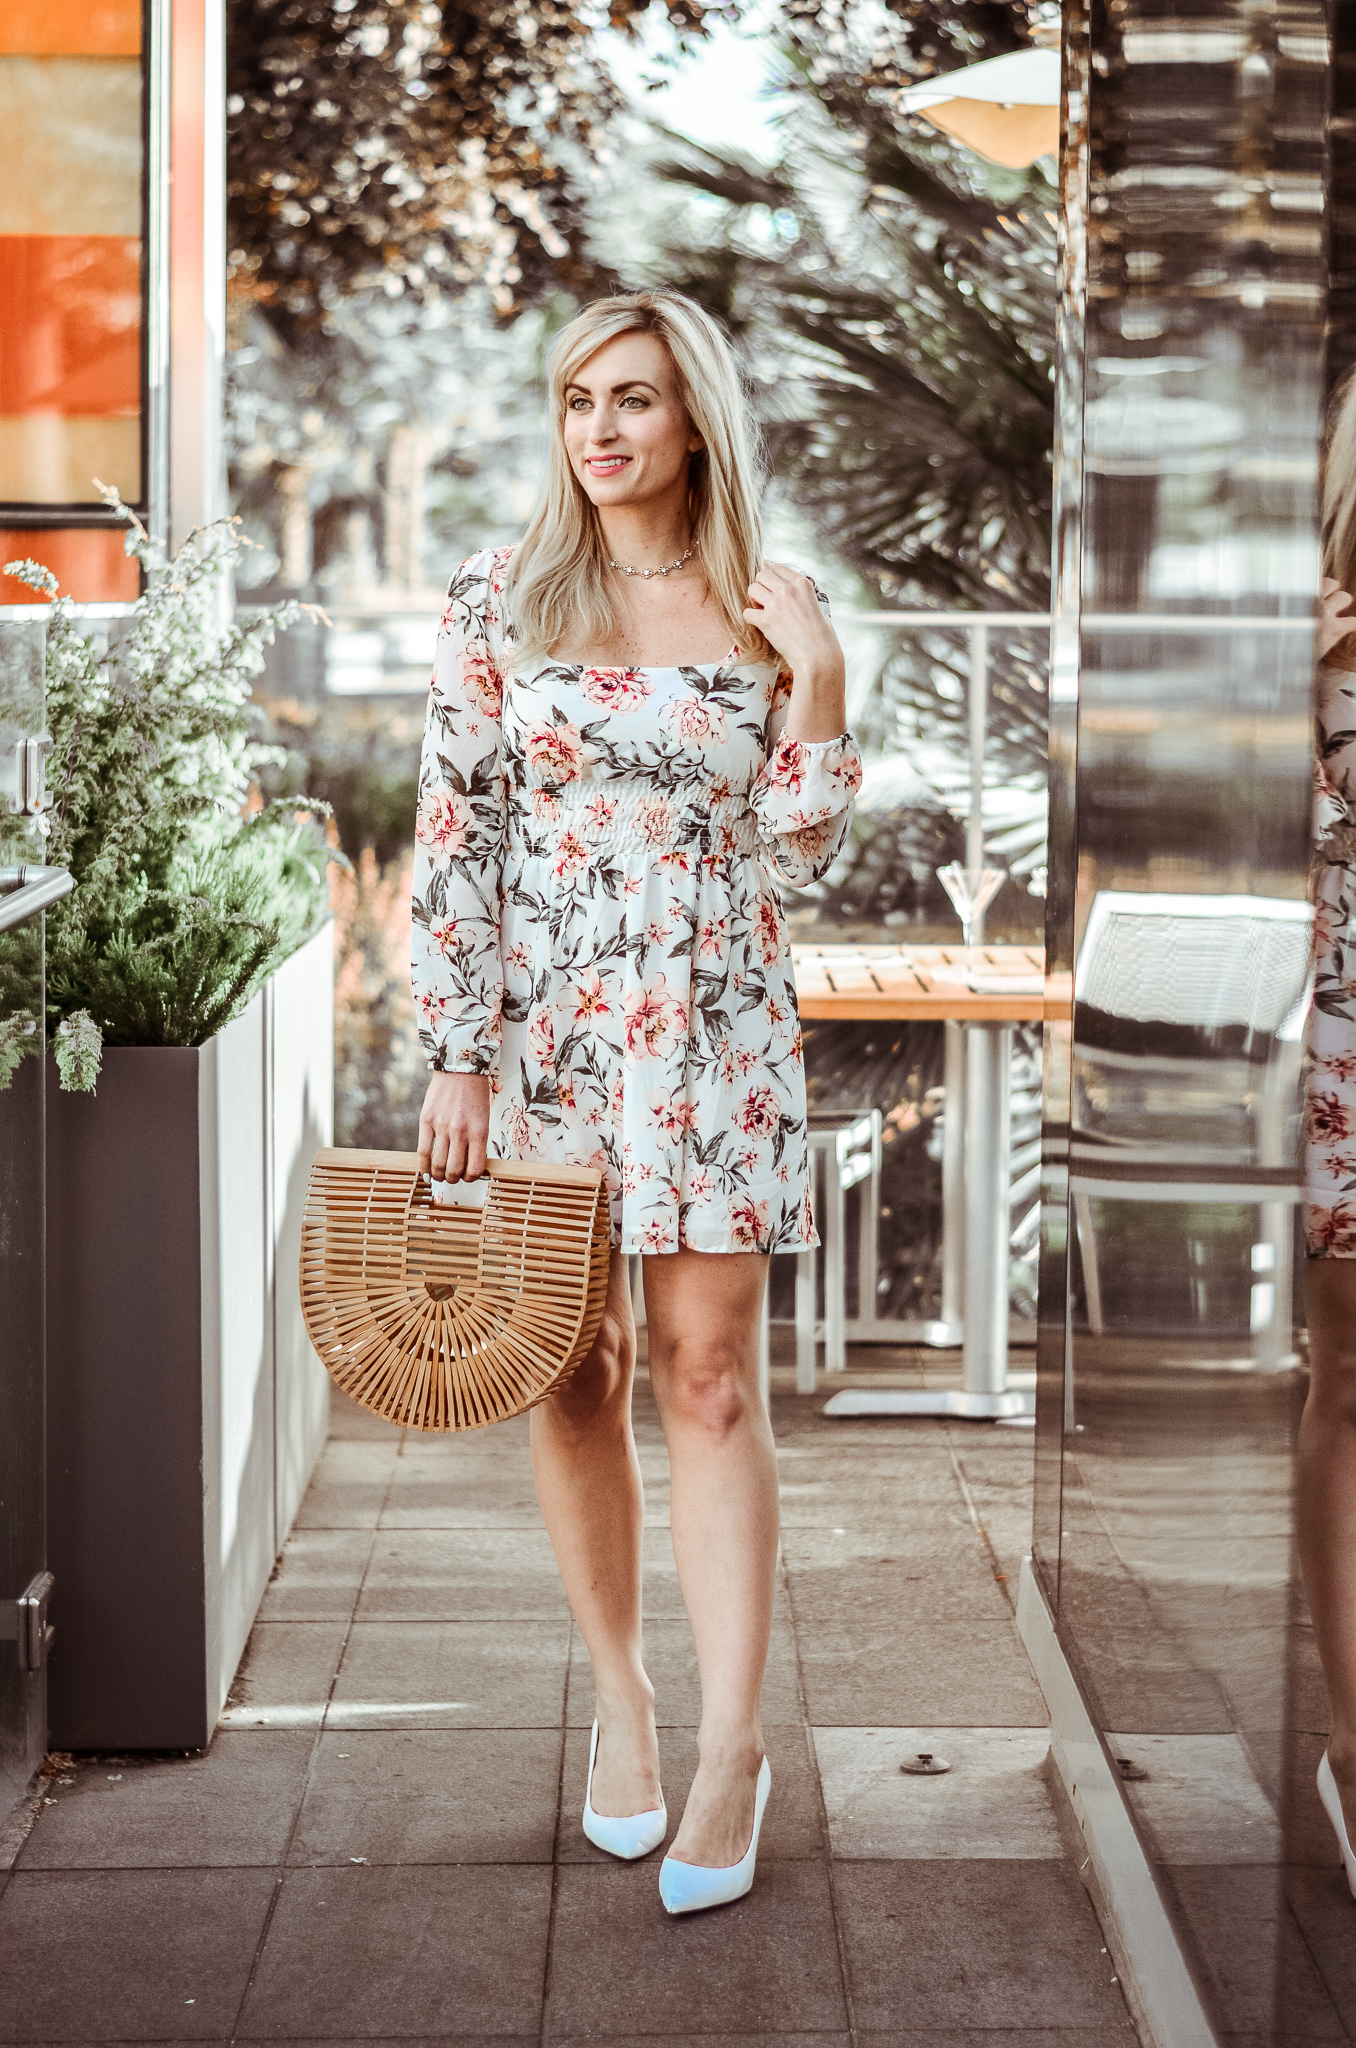 blonde wearing long sleeve white floral dress with bamboo handbag and white high heels